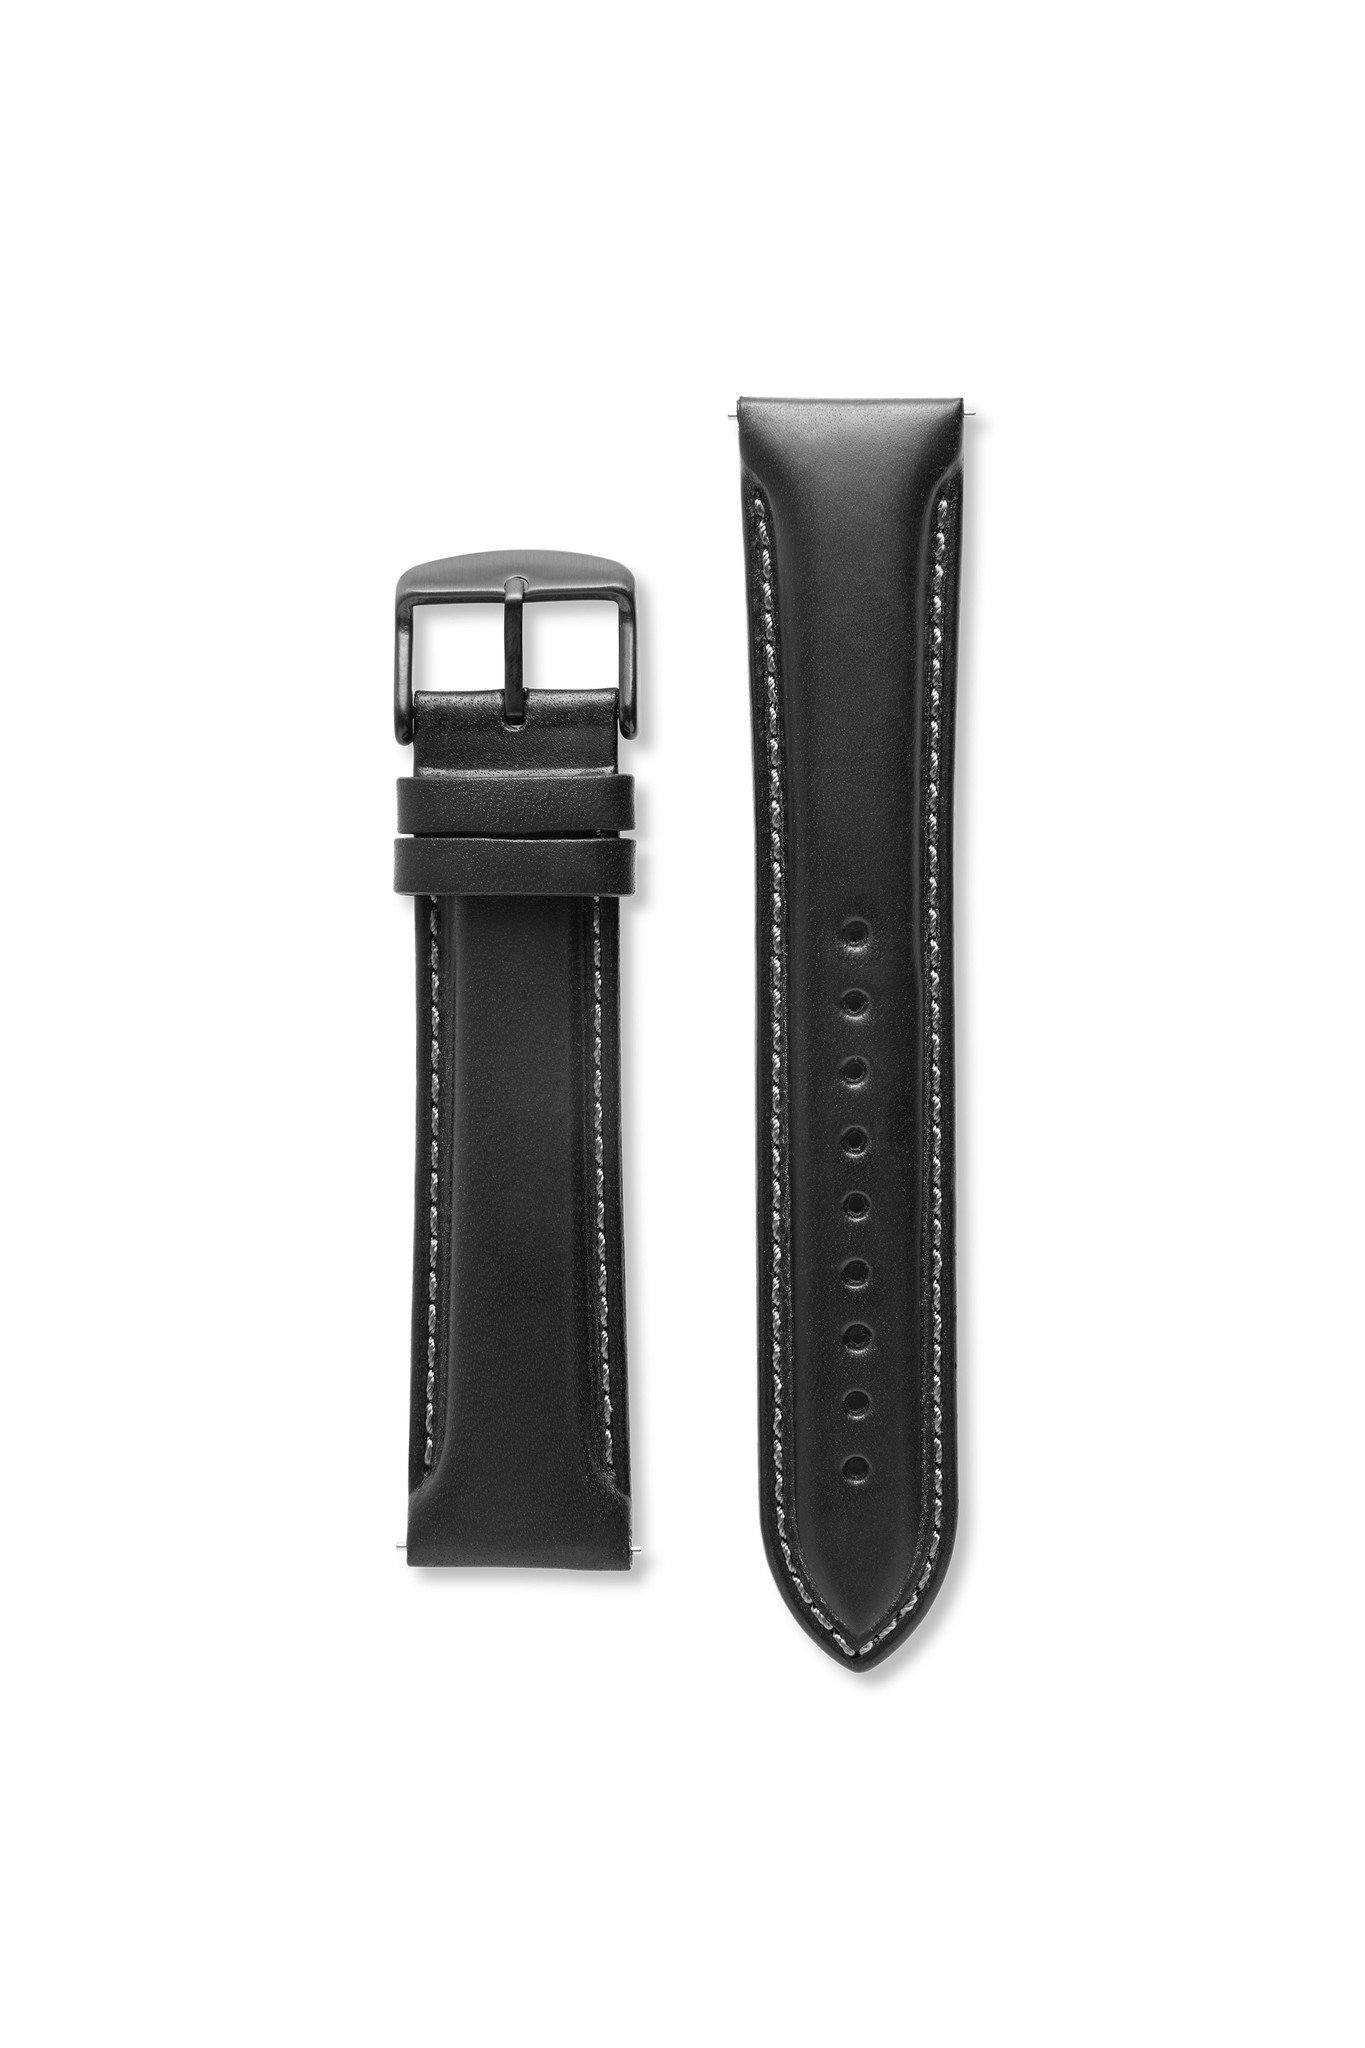 Strap - XL Natural Oil Leather Black Strap